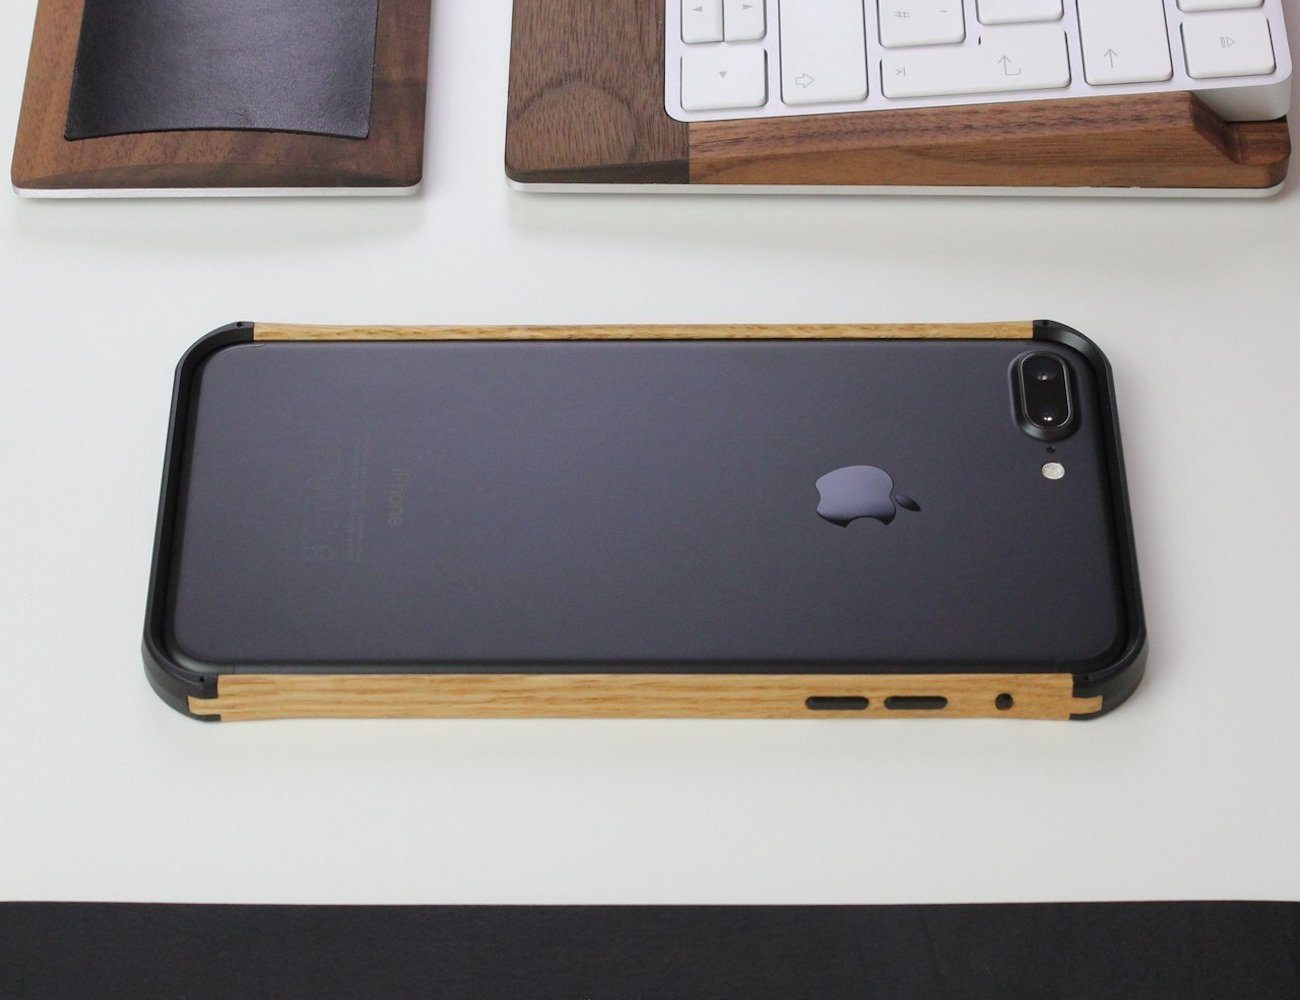 VESELcase Wood iPhone 7 Plus Case